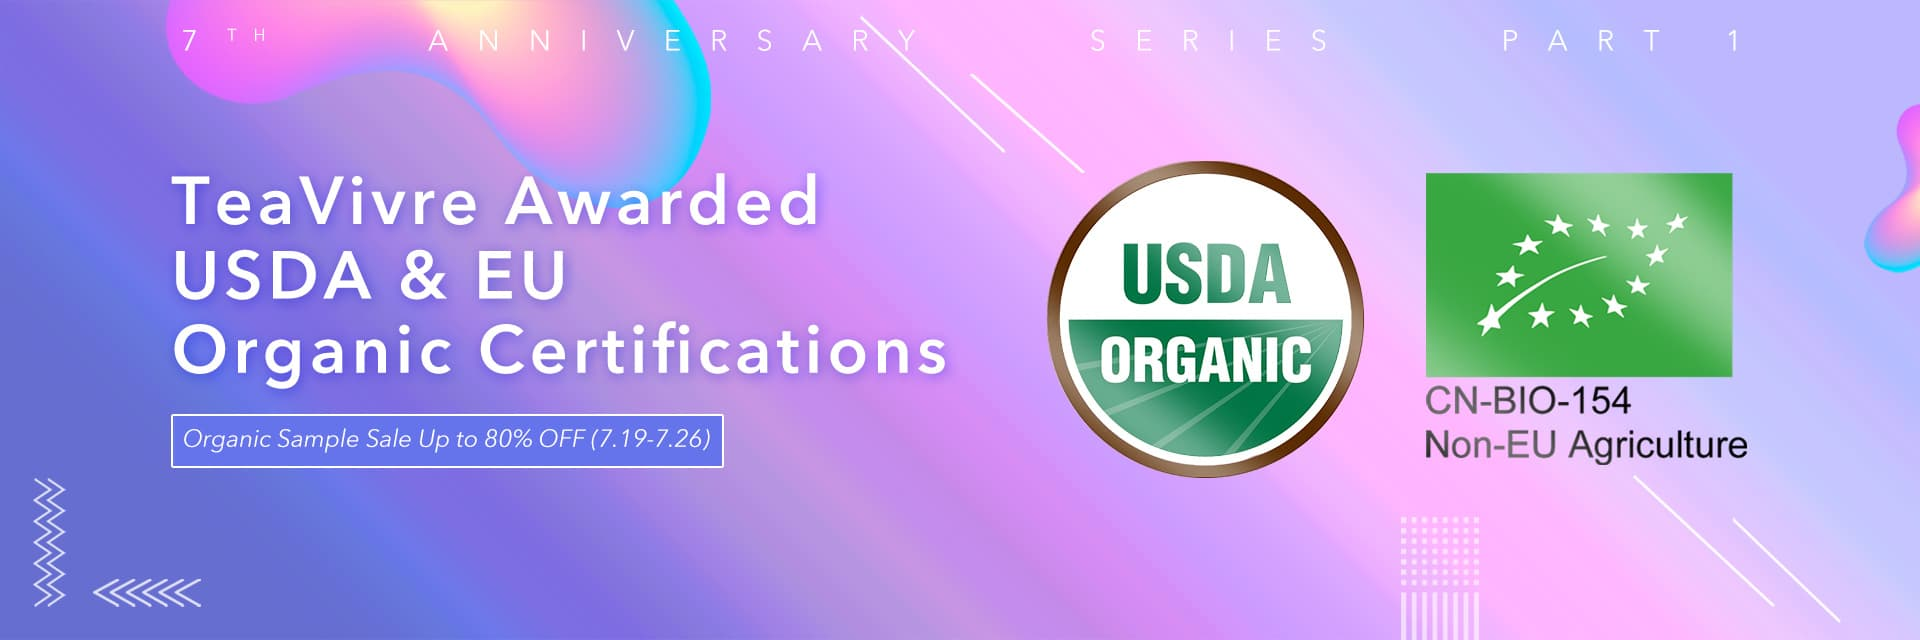 TeaVivre has Awarded USDA & EU Organic Certifications